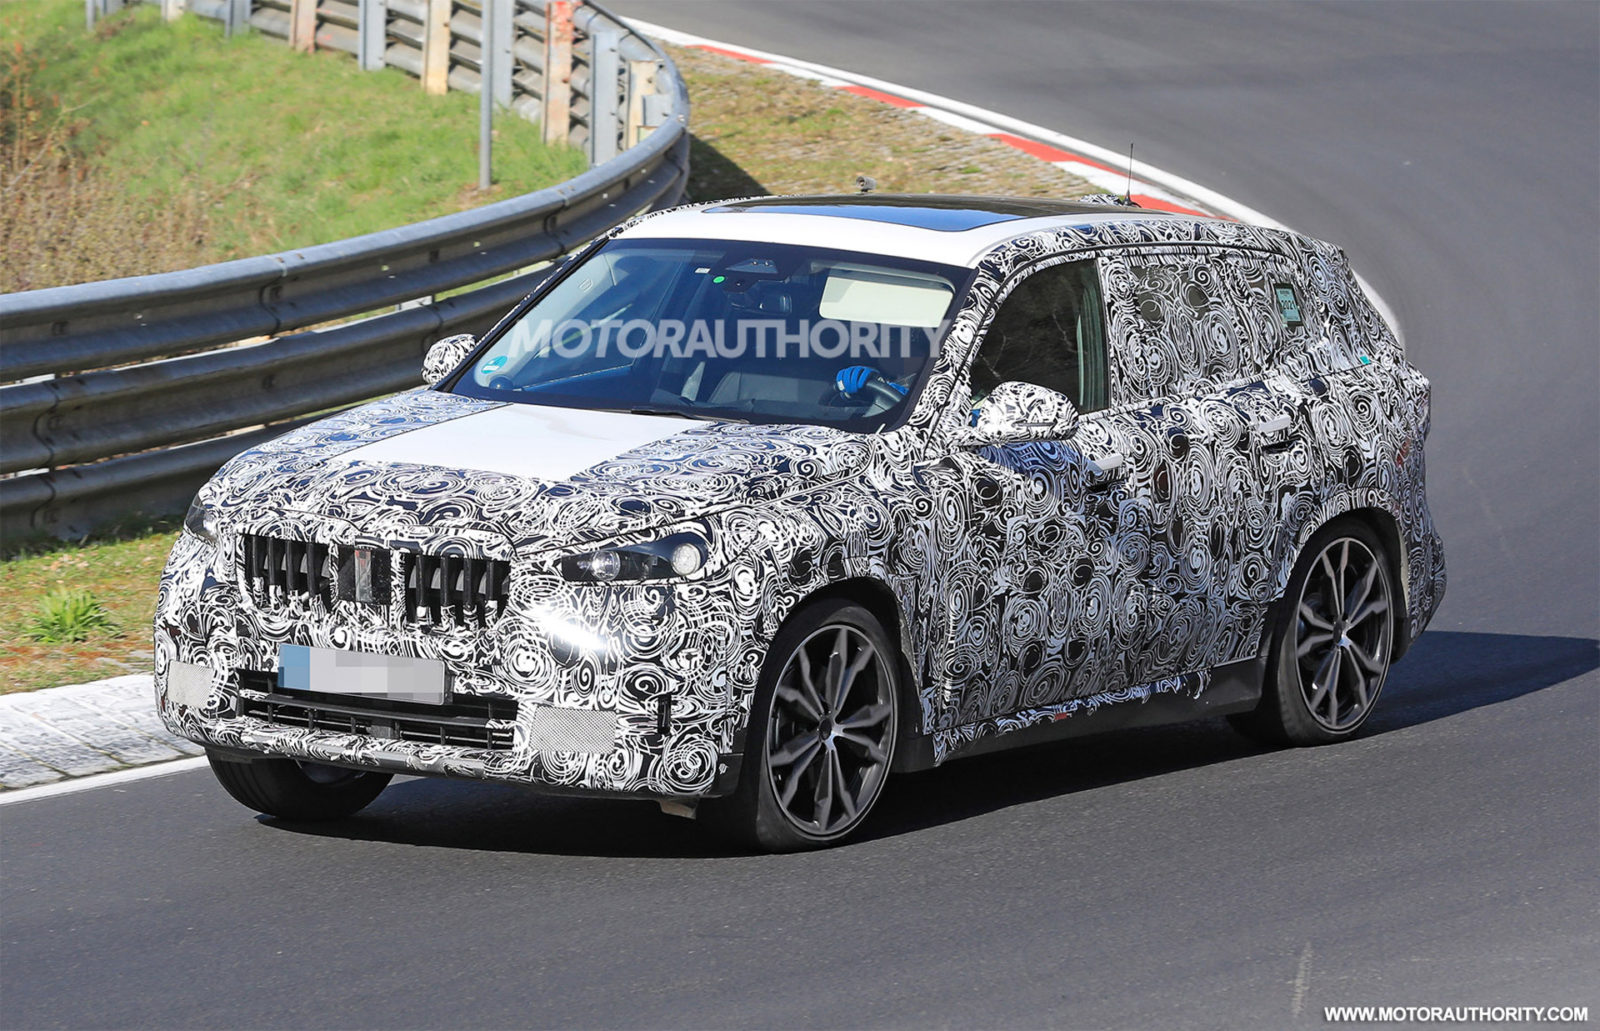 2023-bmw-x1-spy-shots-and-video:-handsome-redesign-coming-for-compact-crossover